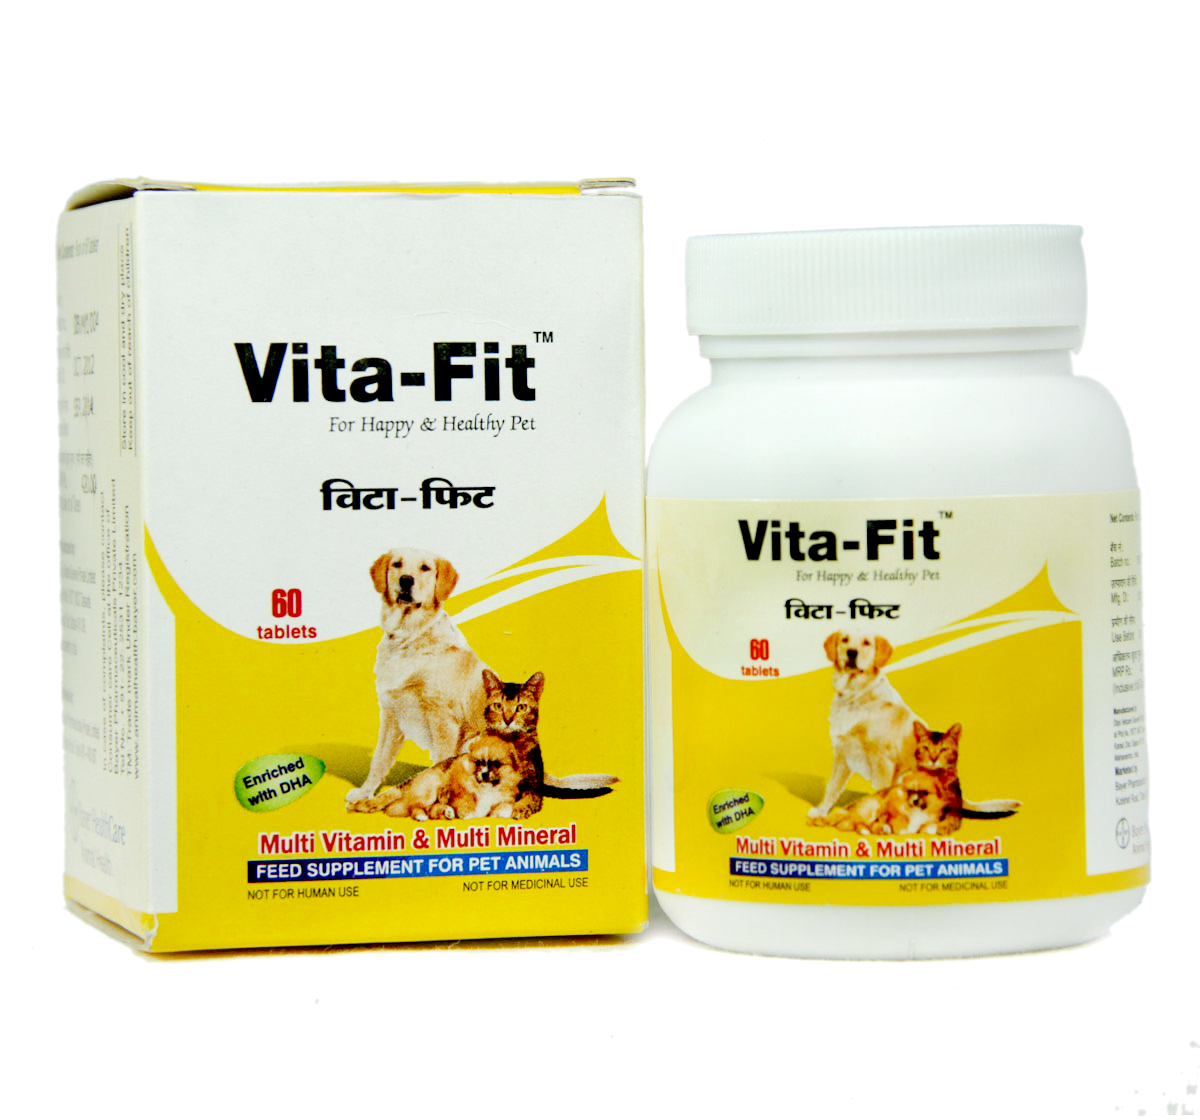 Bayer Vita-Fit Supplement For Dog & Cat - 60 Tablets